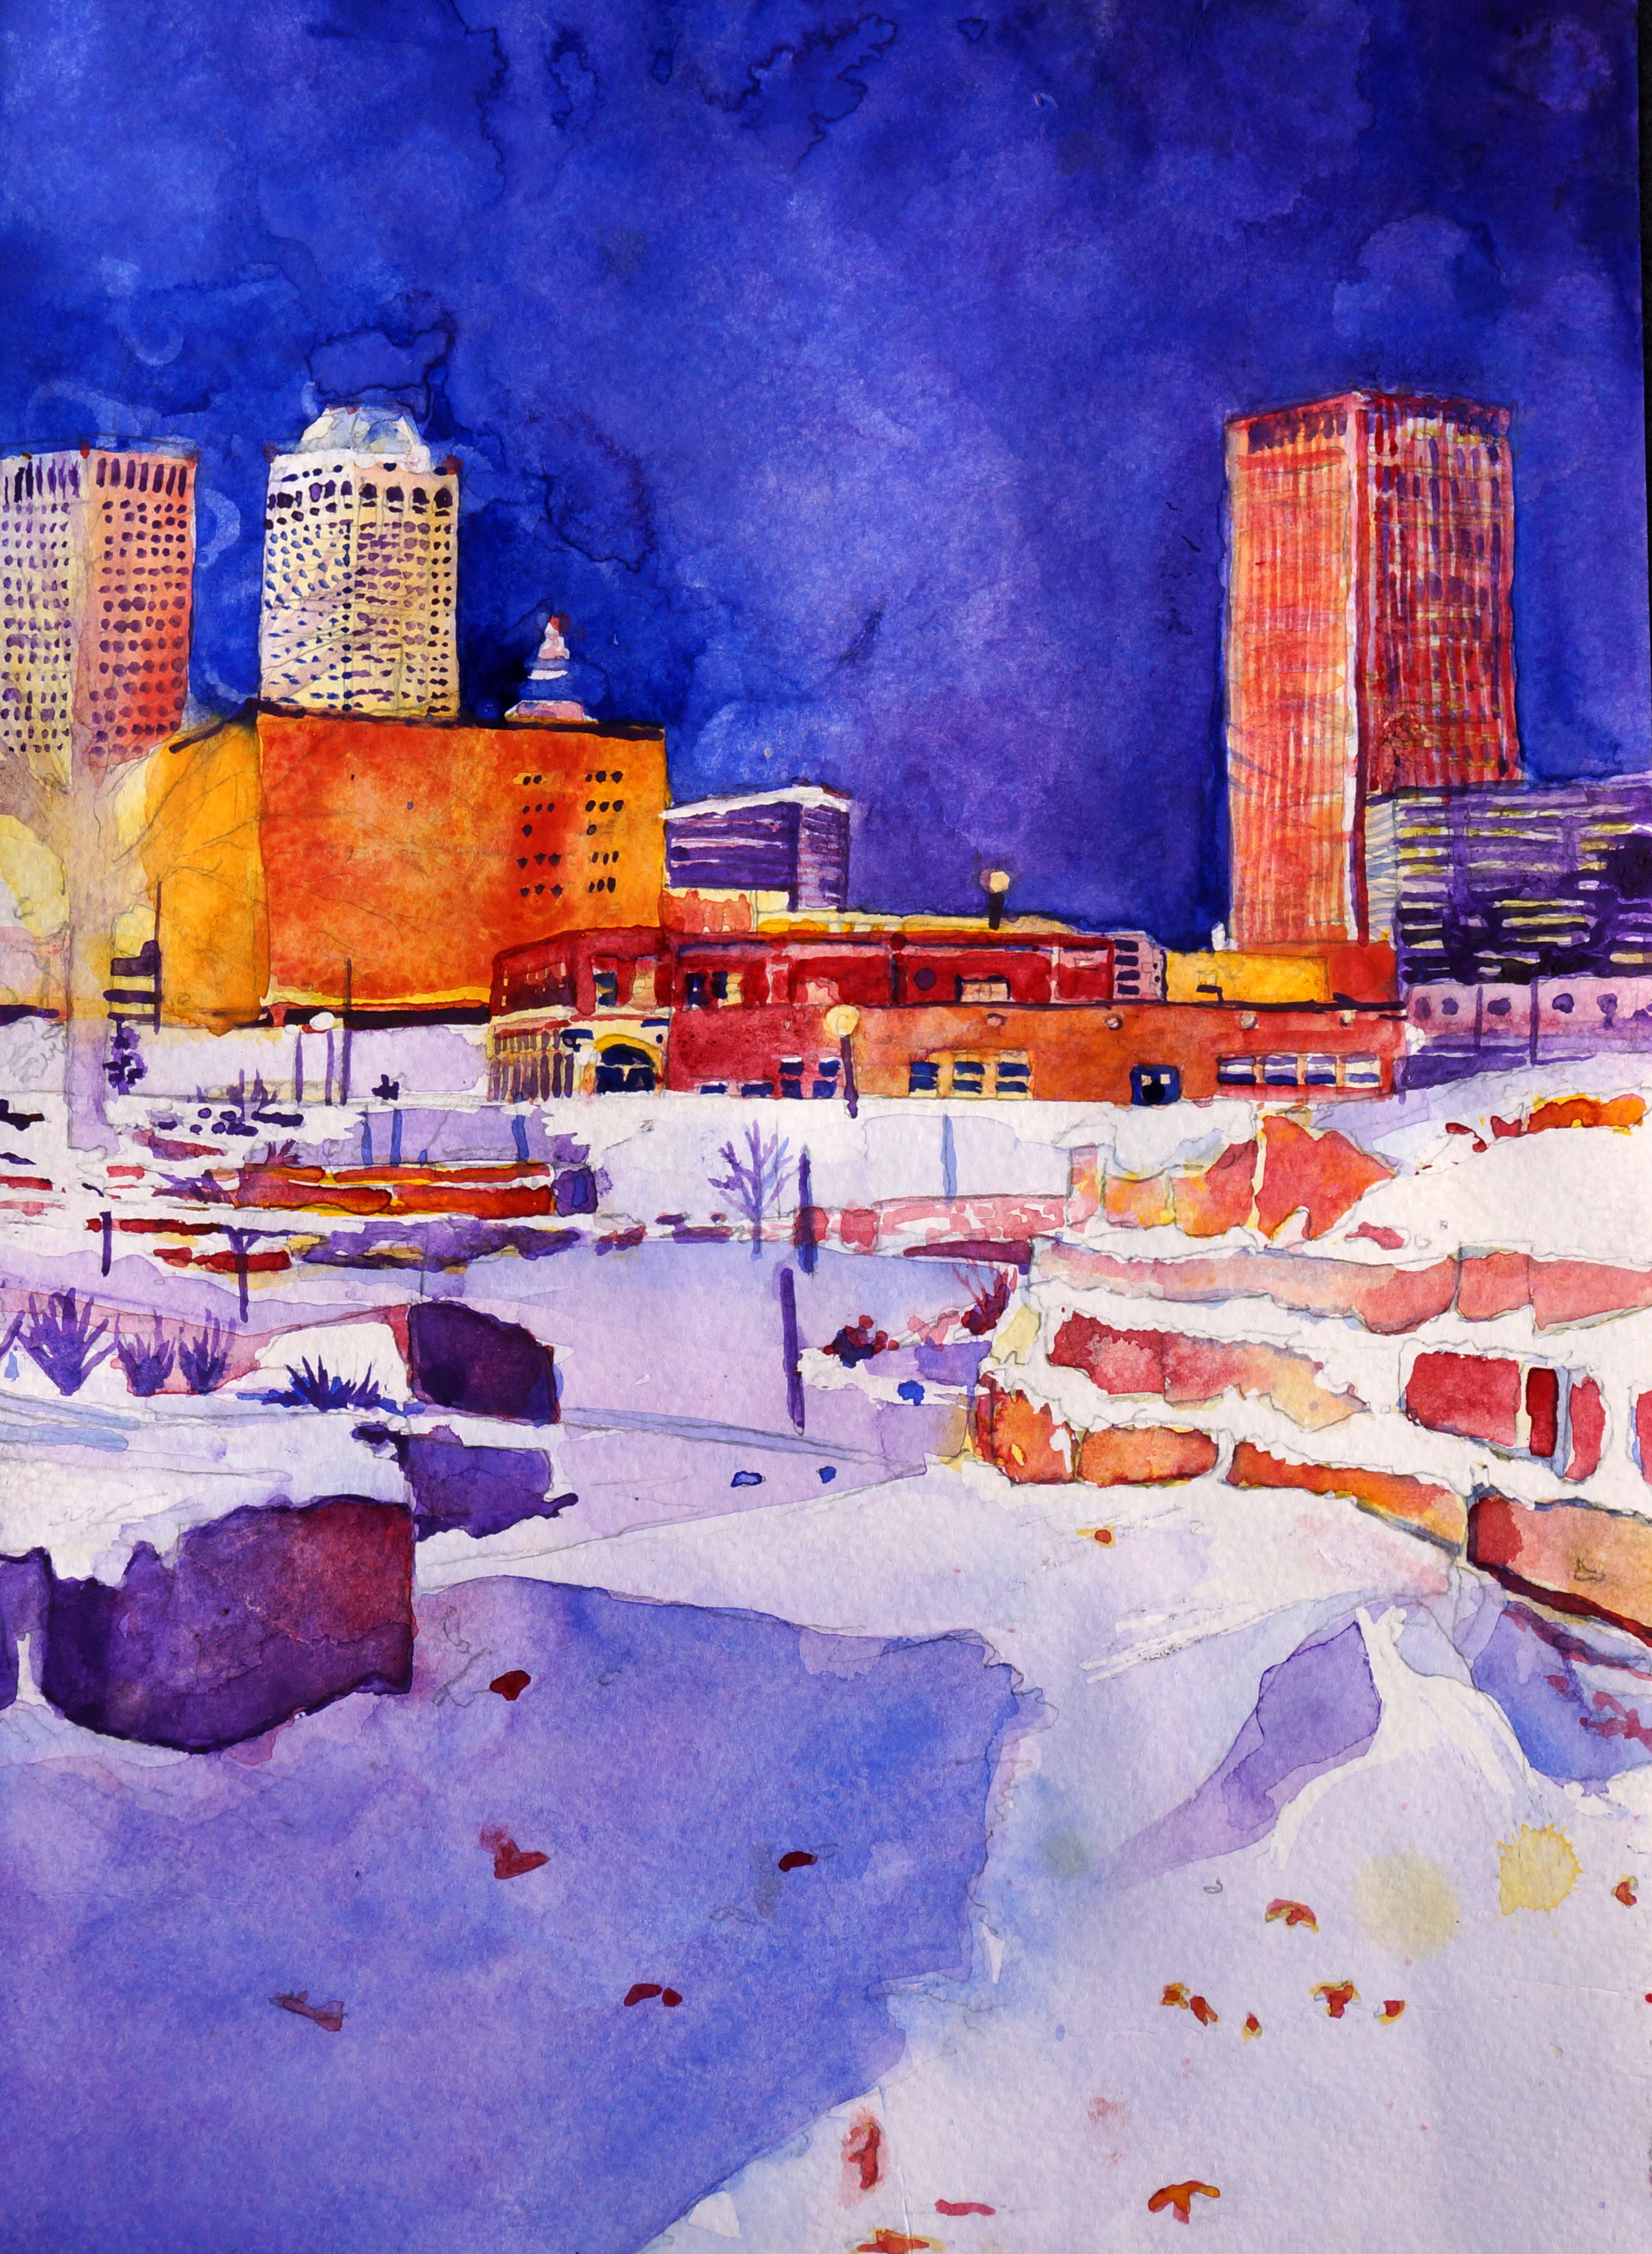 Tulsa in snow first draft